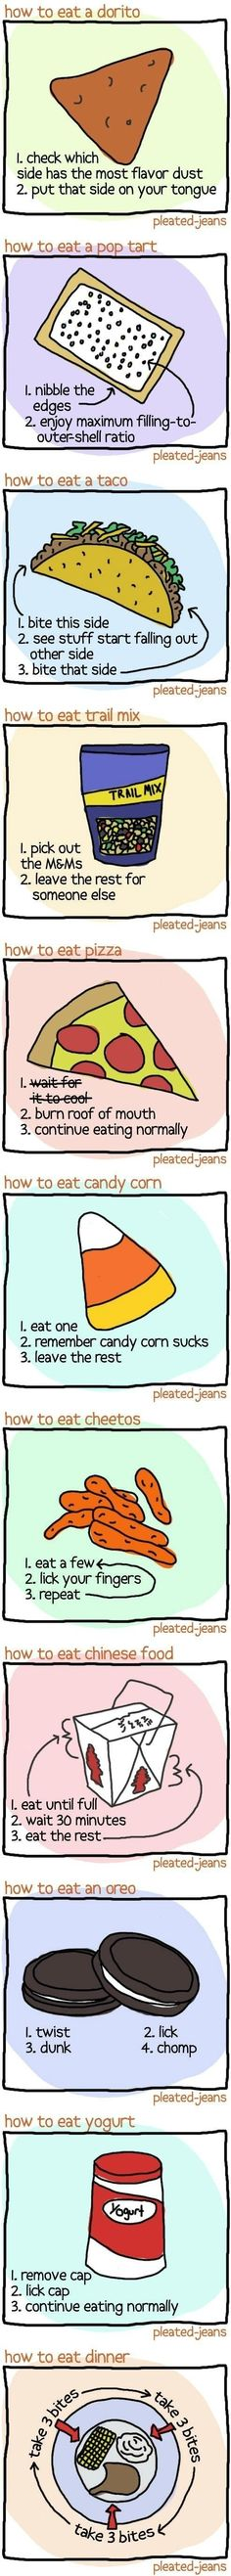 ahahhaha so true! literally Except the candy corn part! haha